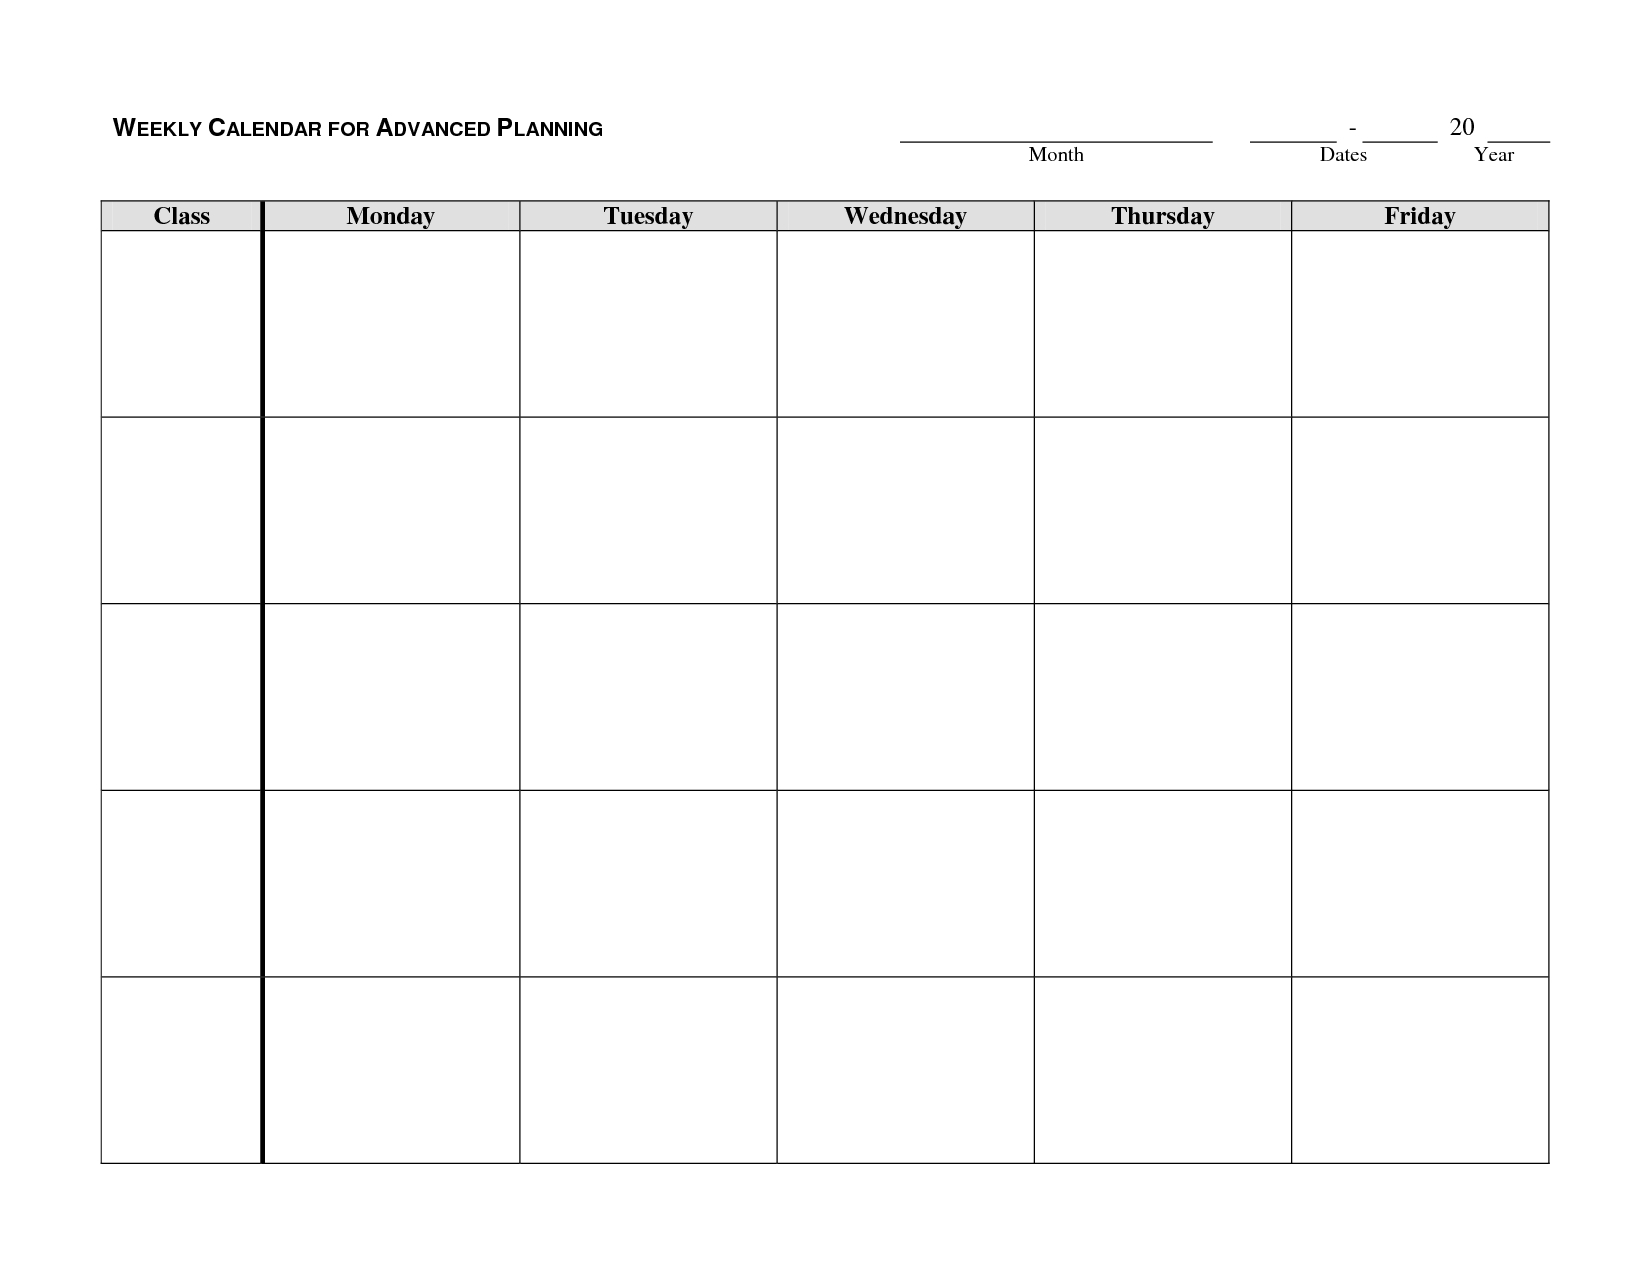 Monday Through Friday Planning Template | Calendar Word Calendar Template Monday Through Friday